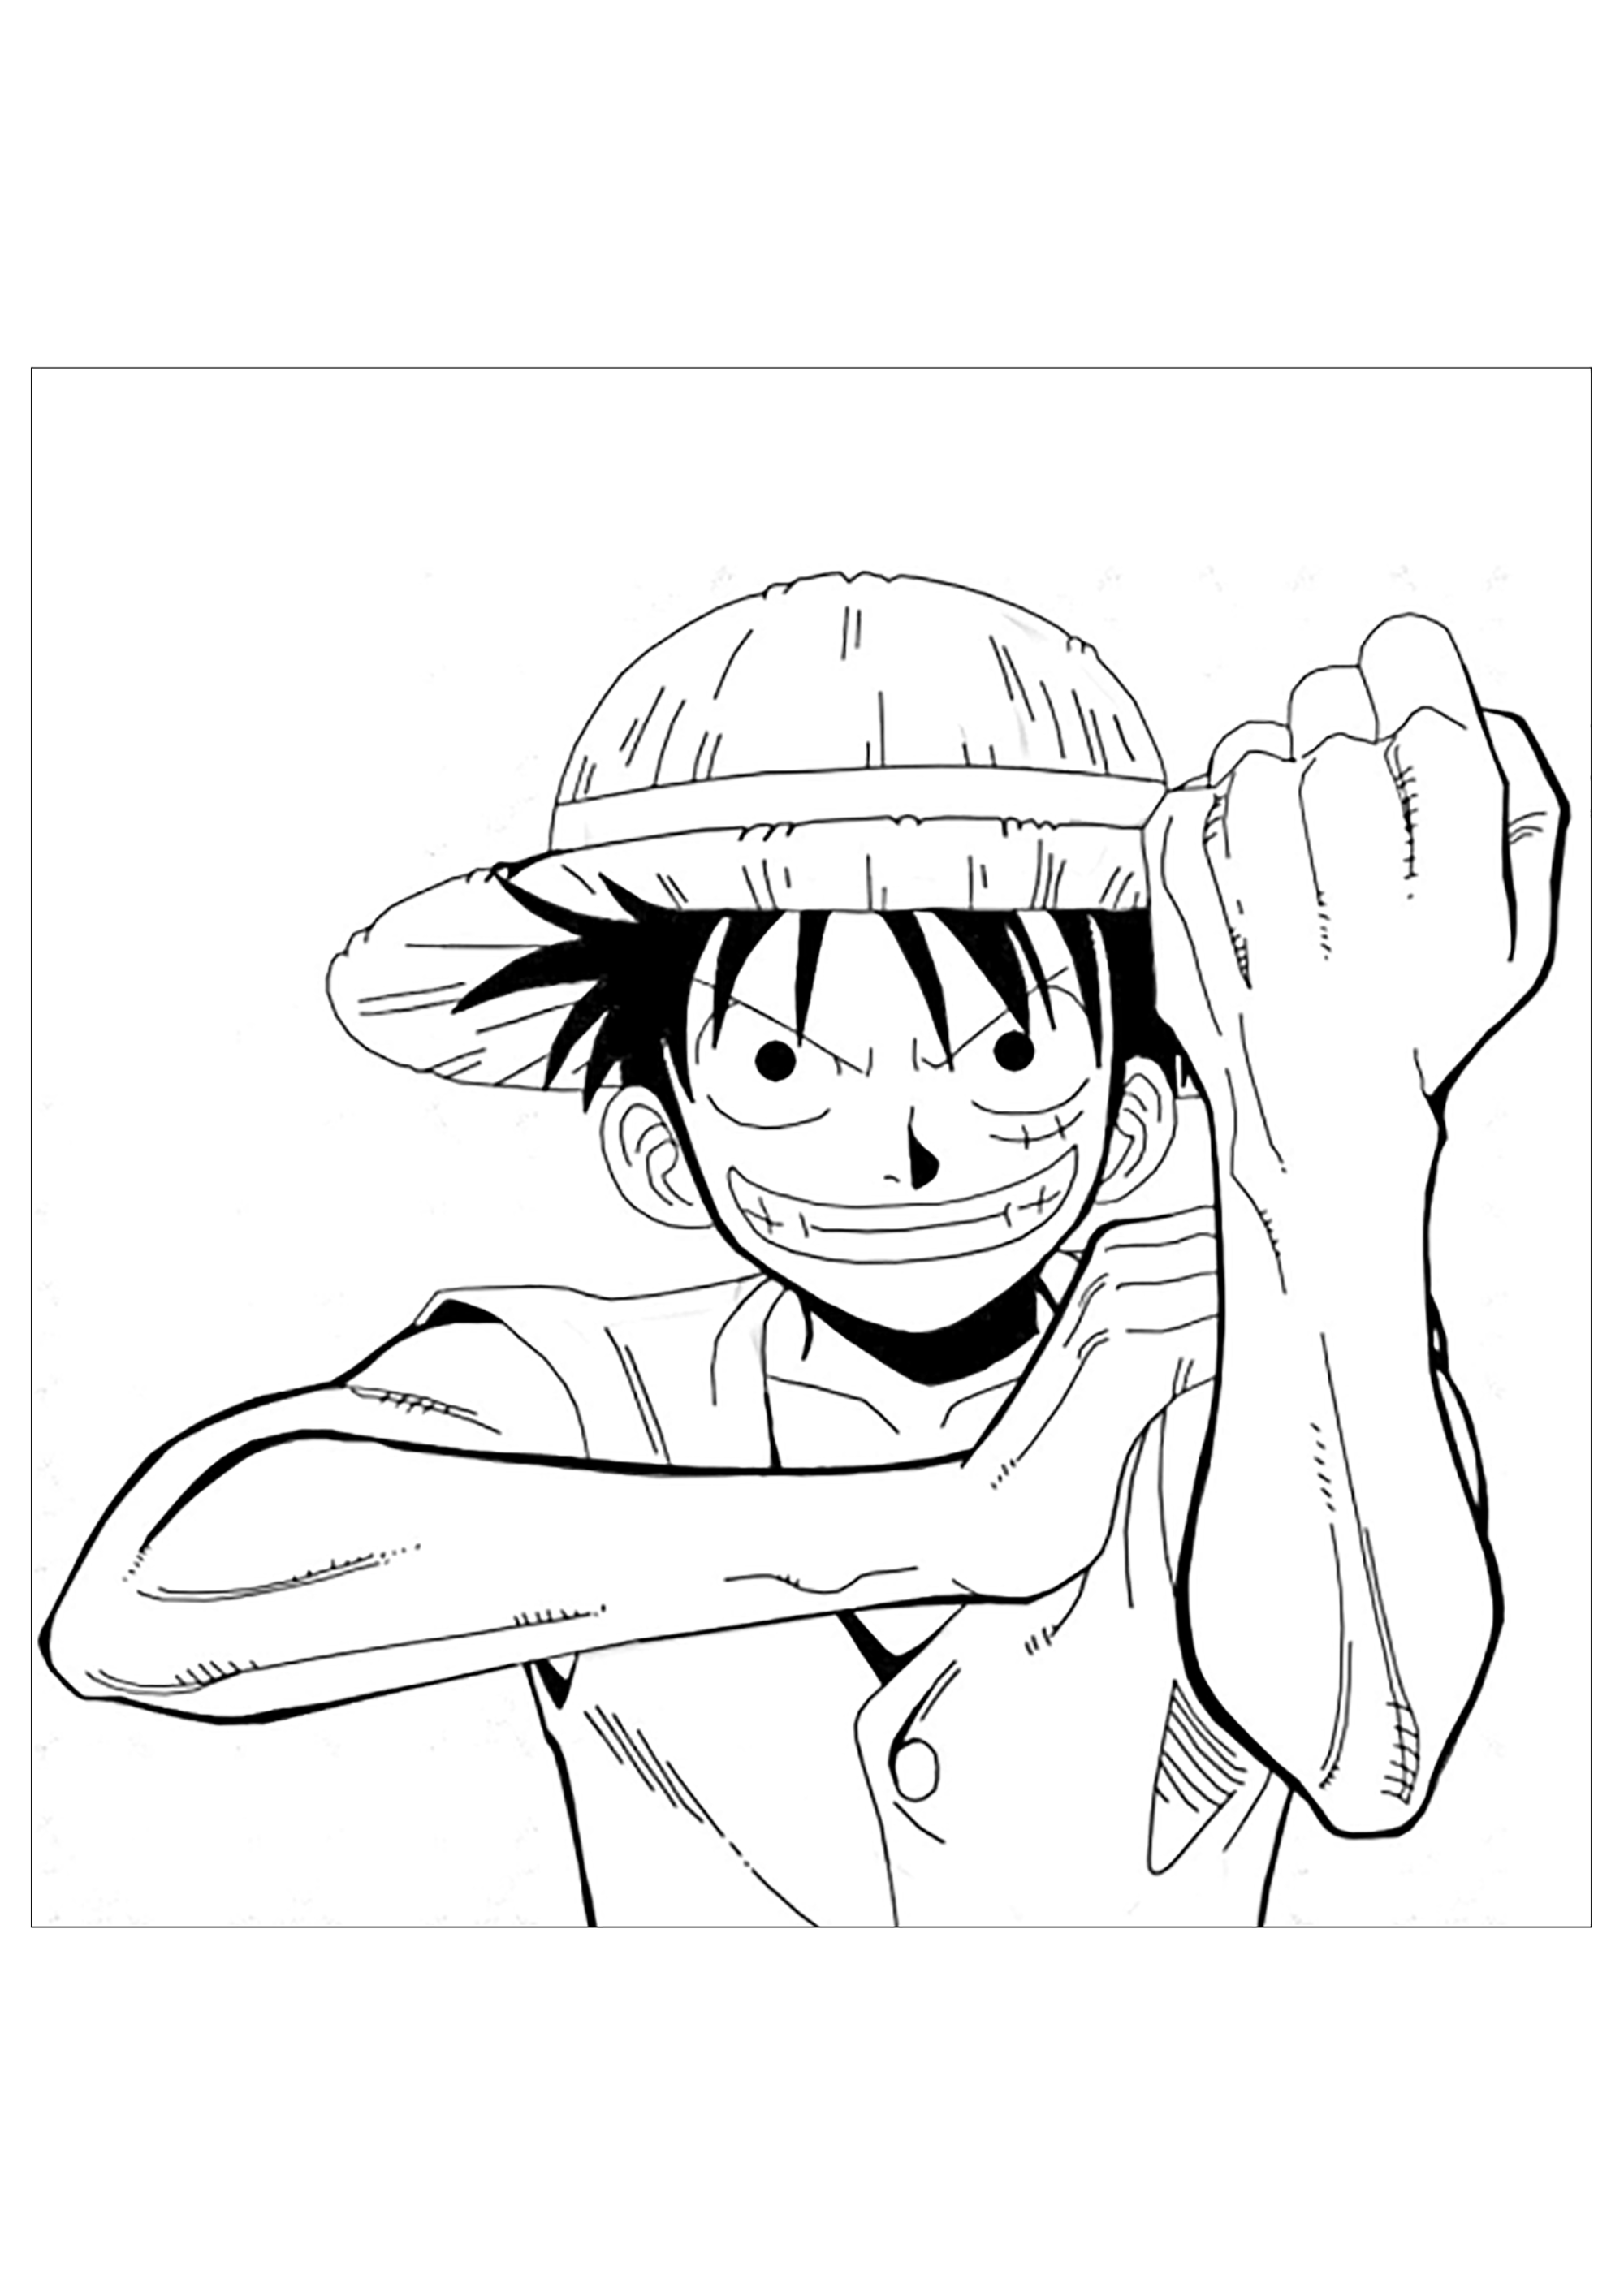 Funny One Piece coloring page